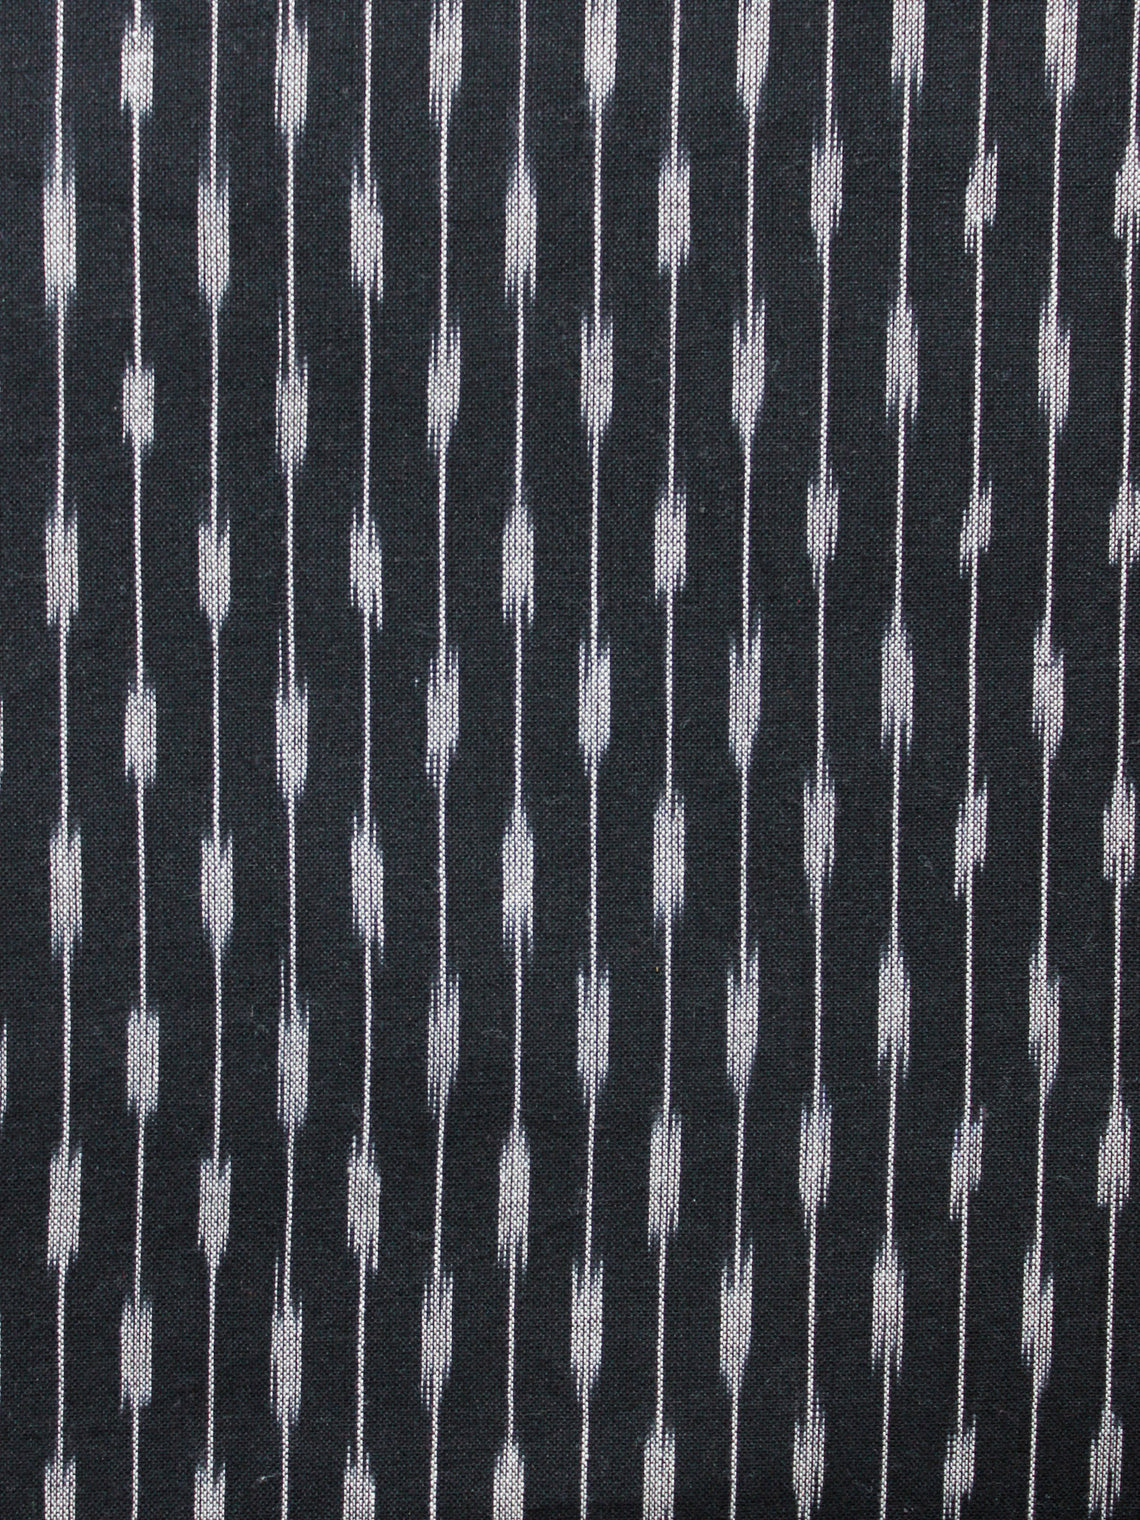 Black Grey Hand Woven Ikat Handloom Cotton Fabric Per Meter - F002F1457